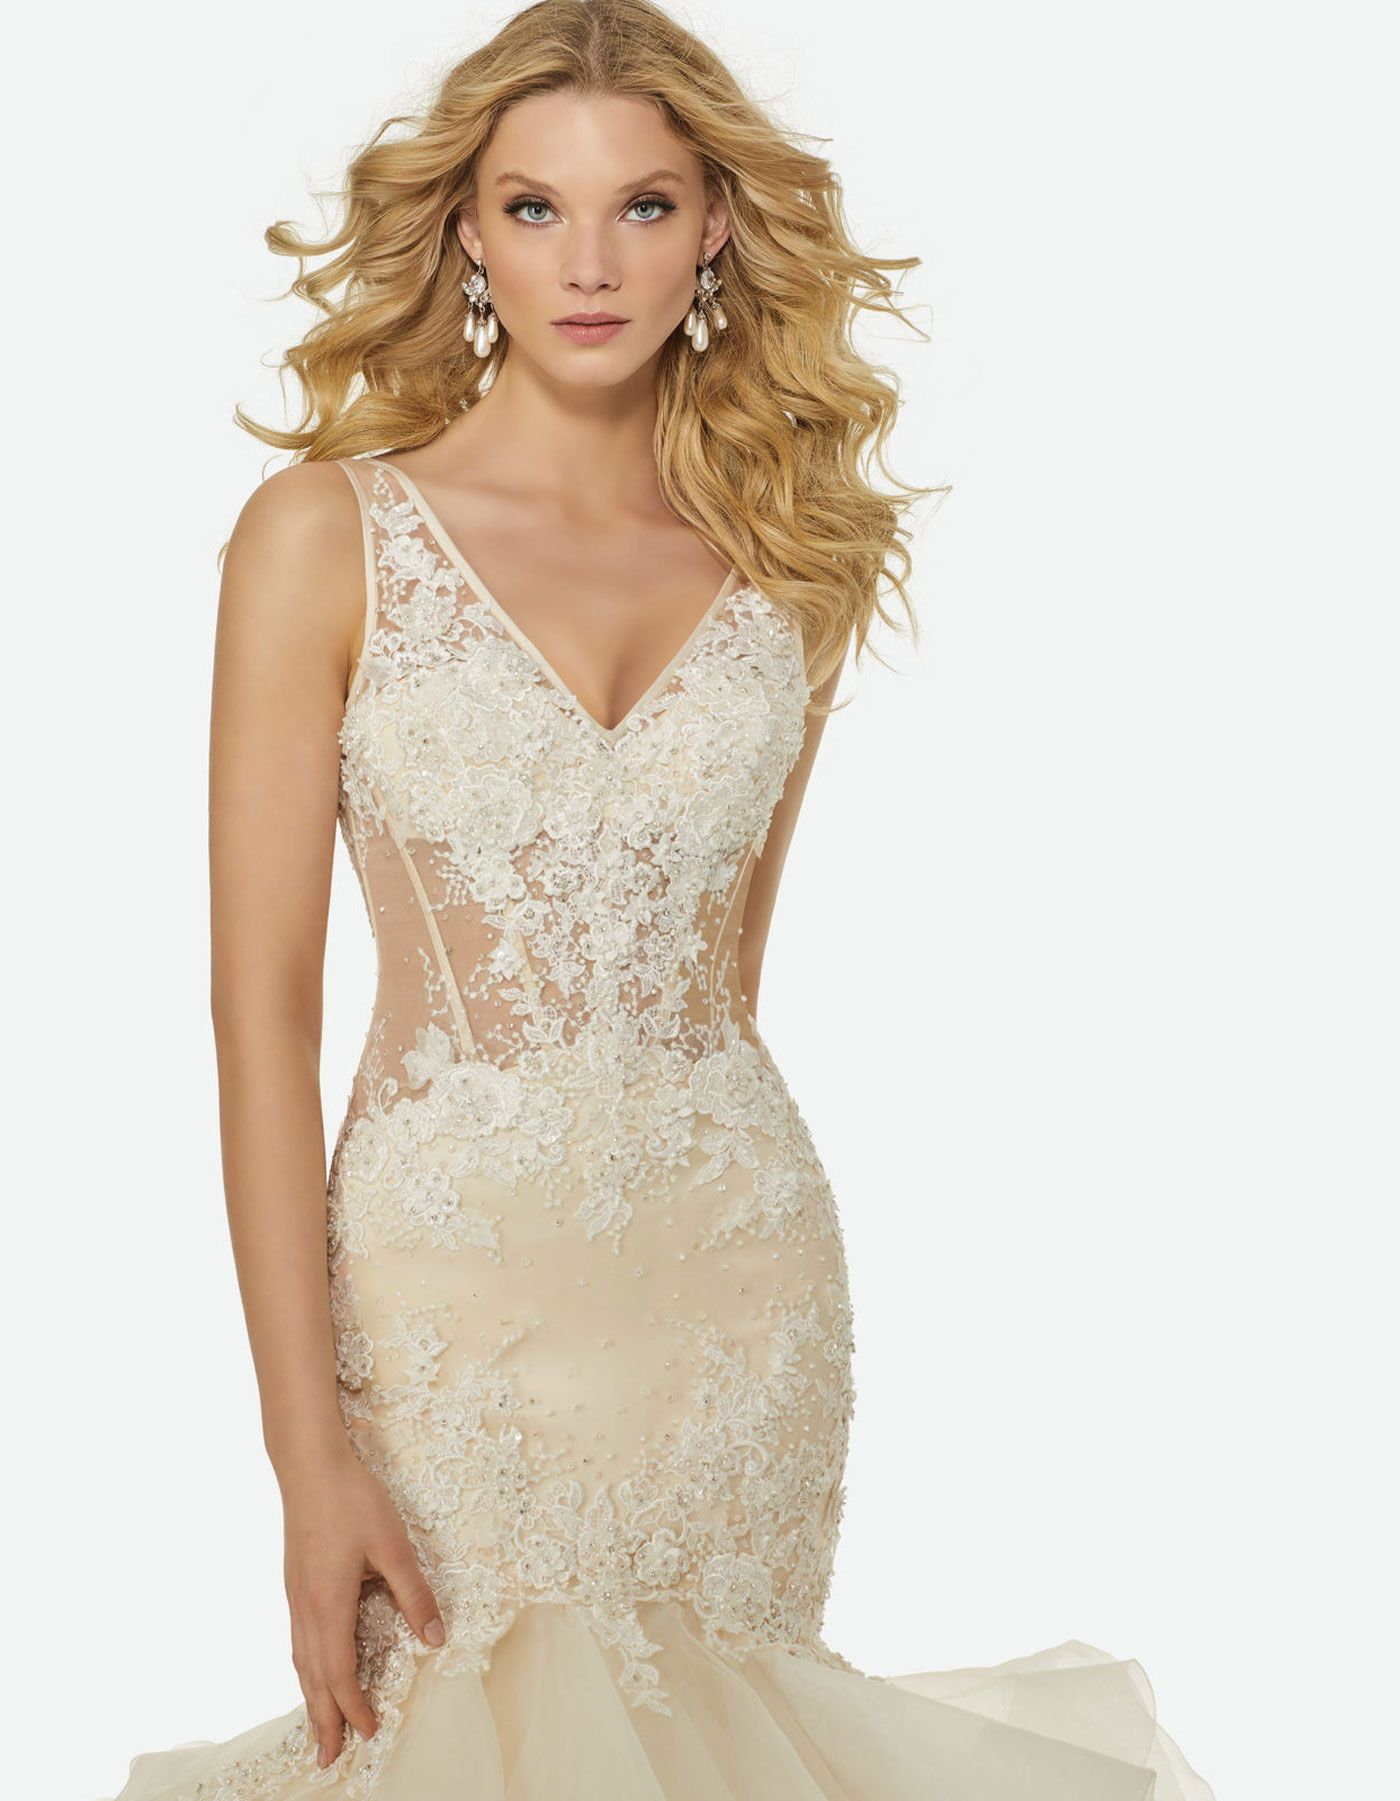 Charlize by randi fenoli the tulle embroidered with floral motifs is